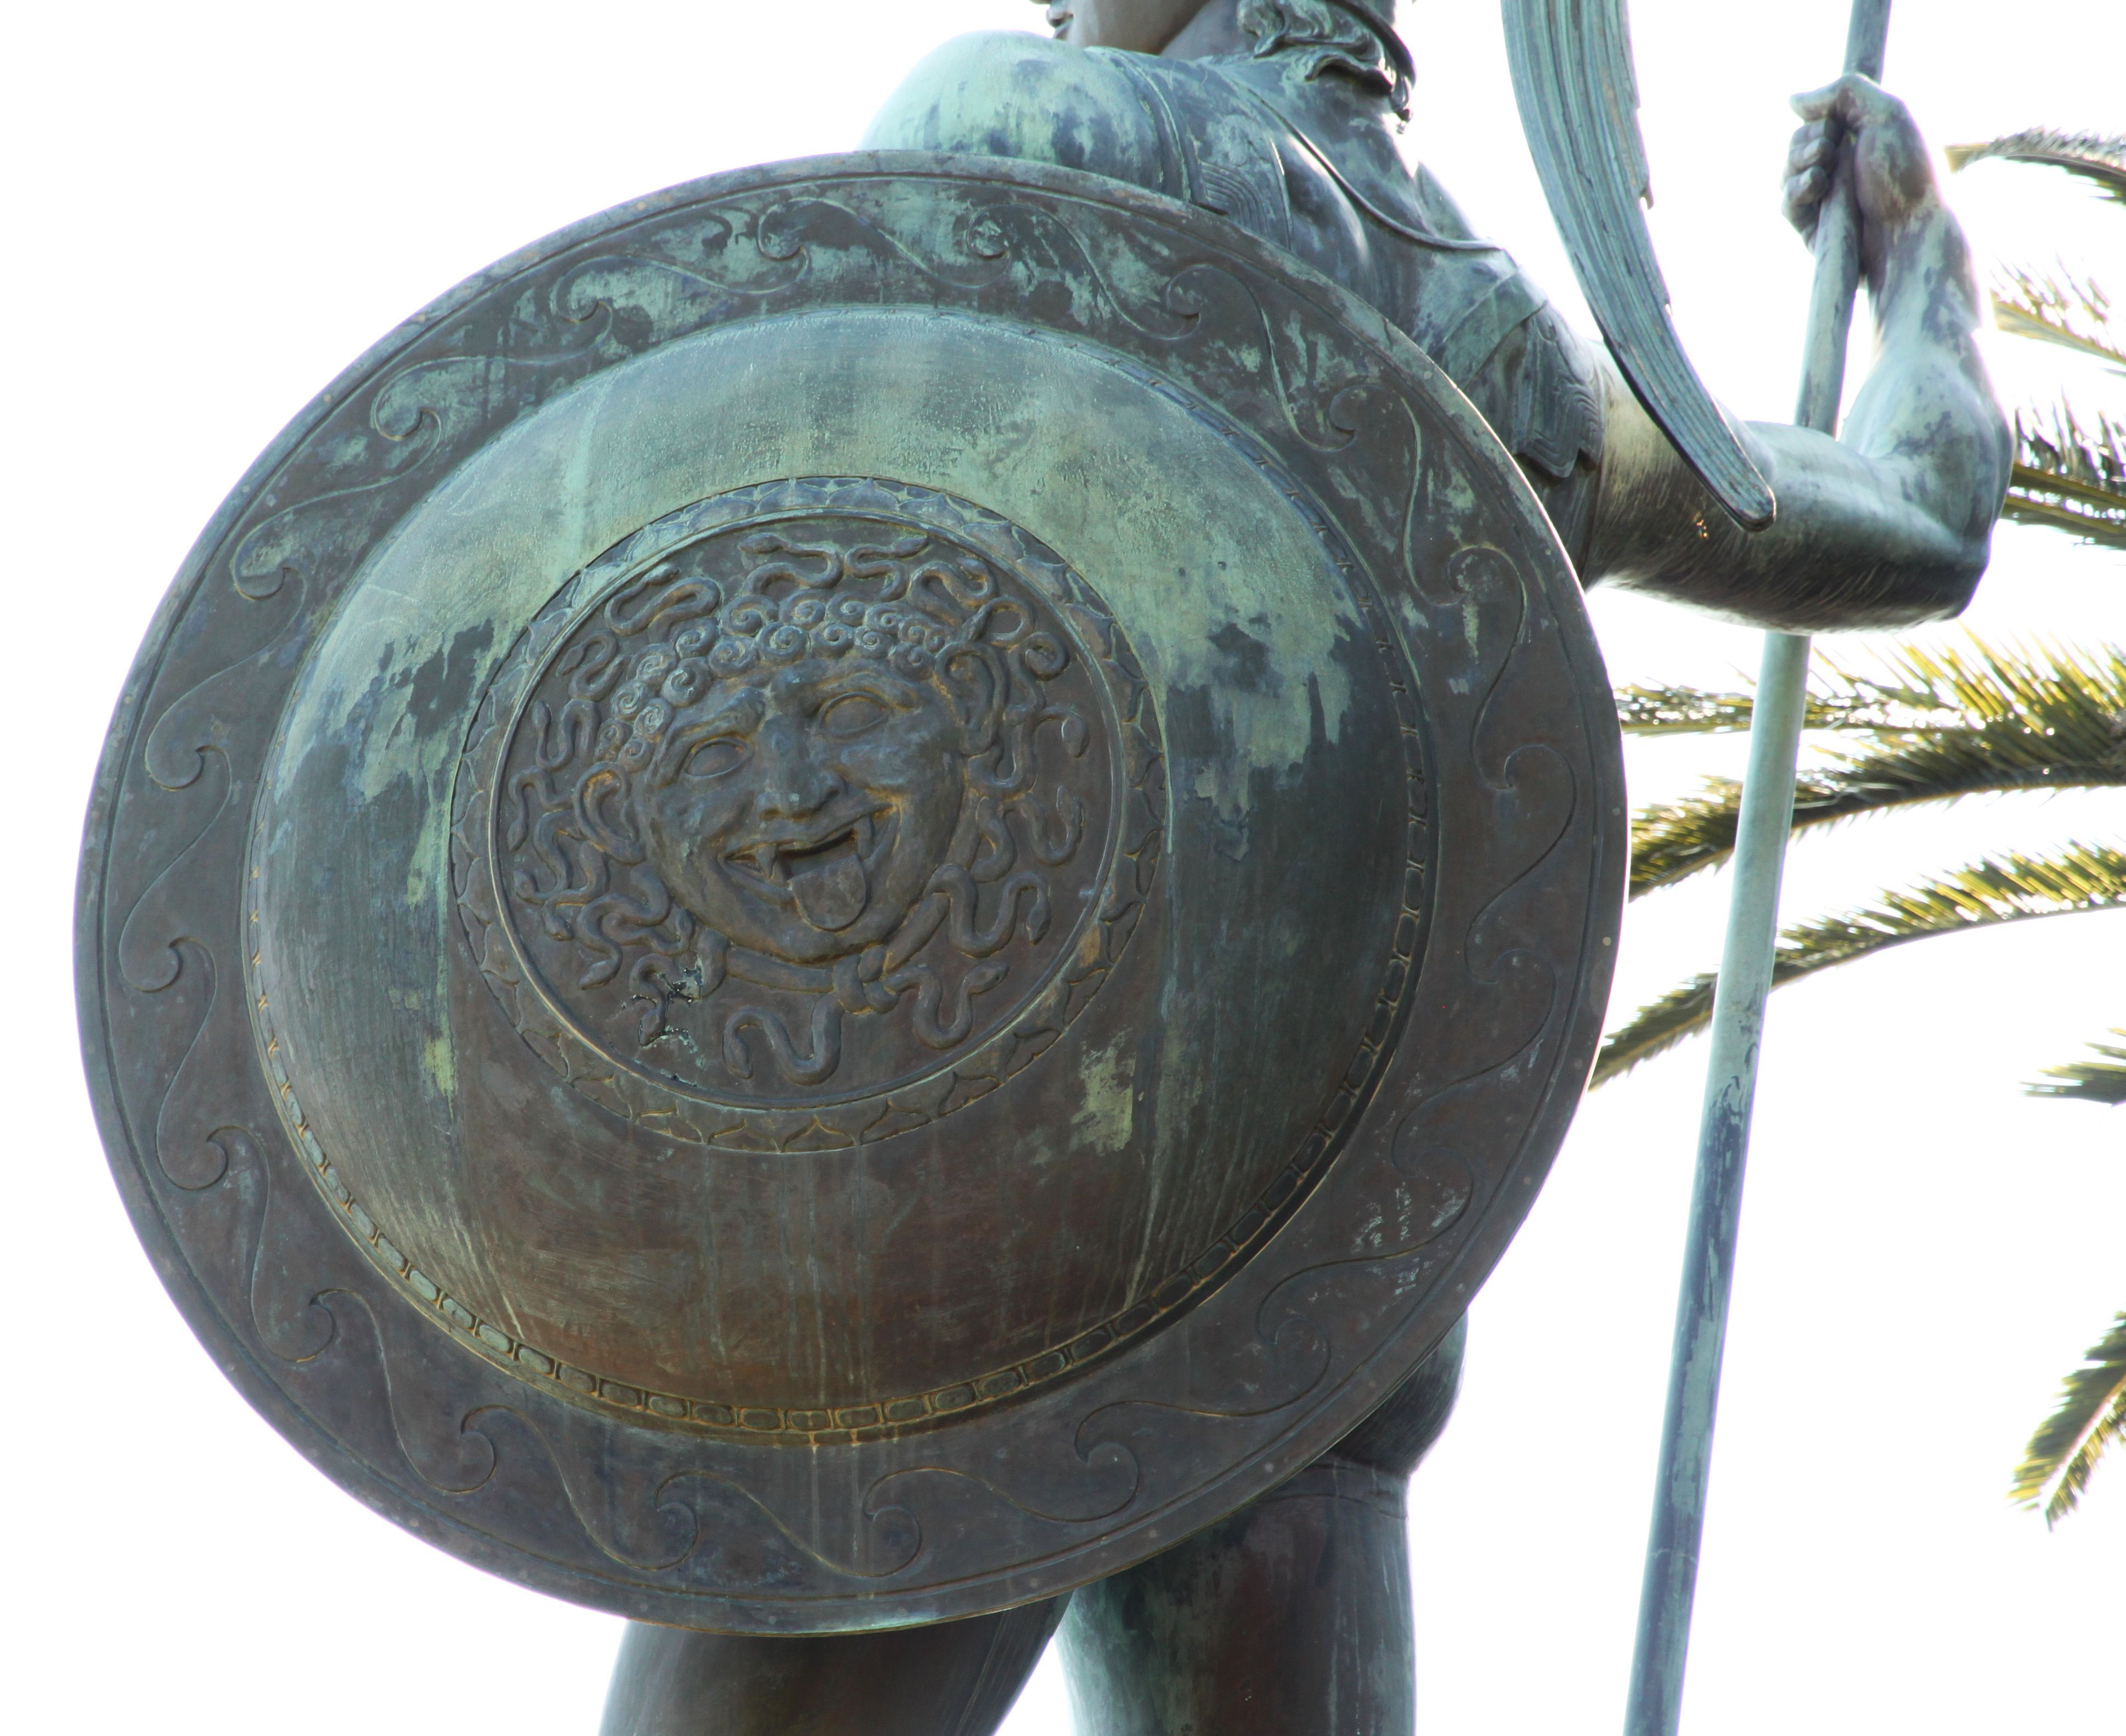 Achilles statue in full hoplite uniform with detailing such as a relief of a gorgon's head at the shield, apparently to petrify any enemies. In Greek mythology, a Gorgon refers to any of three sisters who had hair made of living, venomous snakes, as well as a horrifying visage that turned those who beheld her to stone. Traditionally, while two of the Gorgons were immortal, Stheno and Euryale, their sister Medusa was not, and she was slain by the demigod and hero Perseus. Achilles Palace…